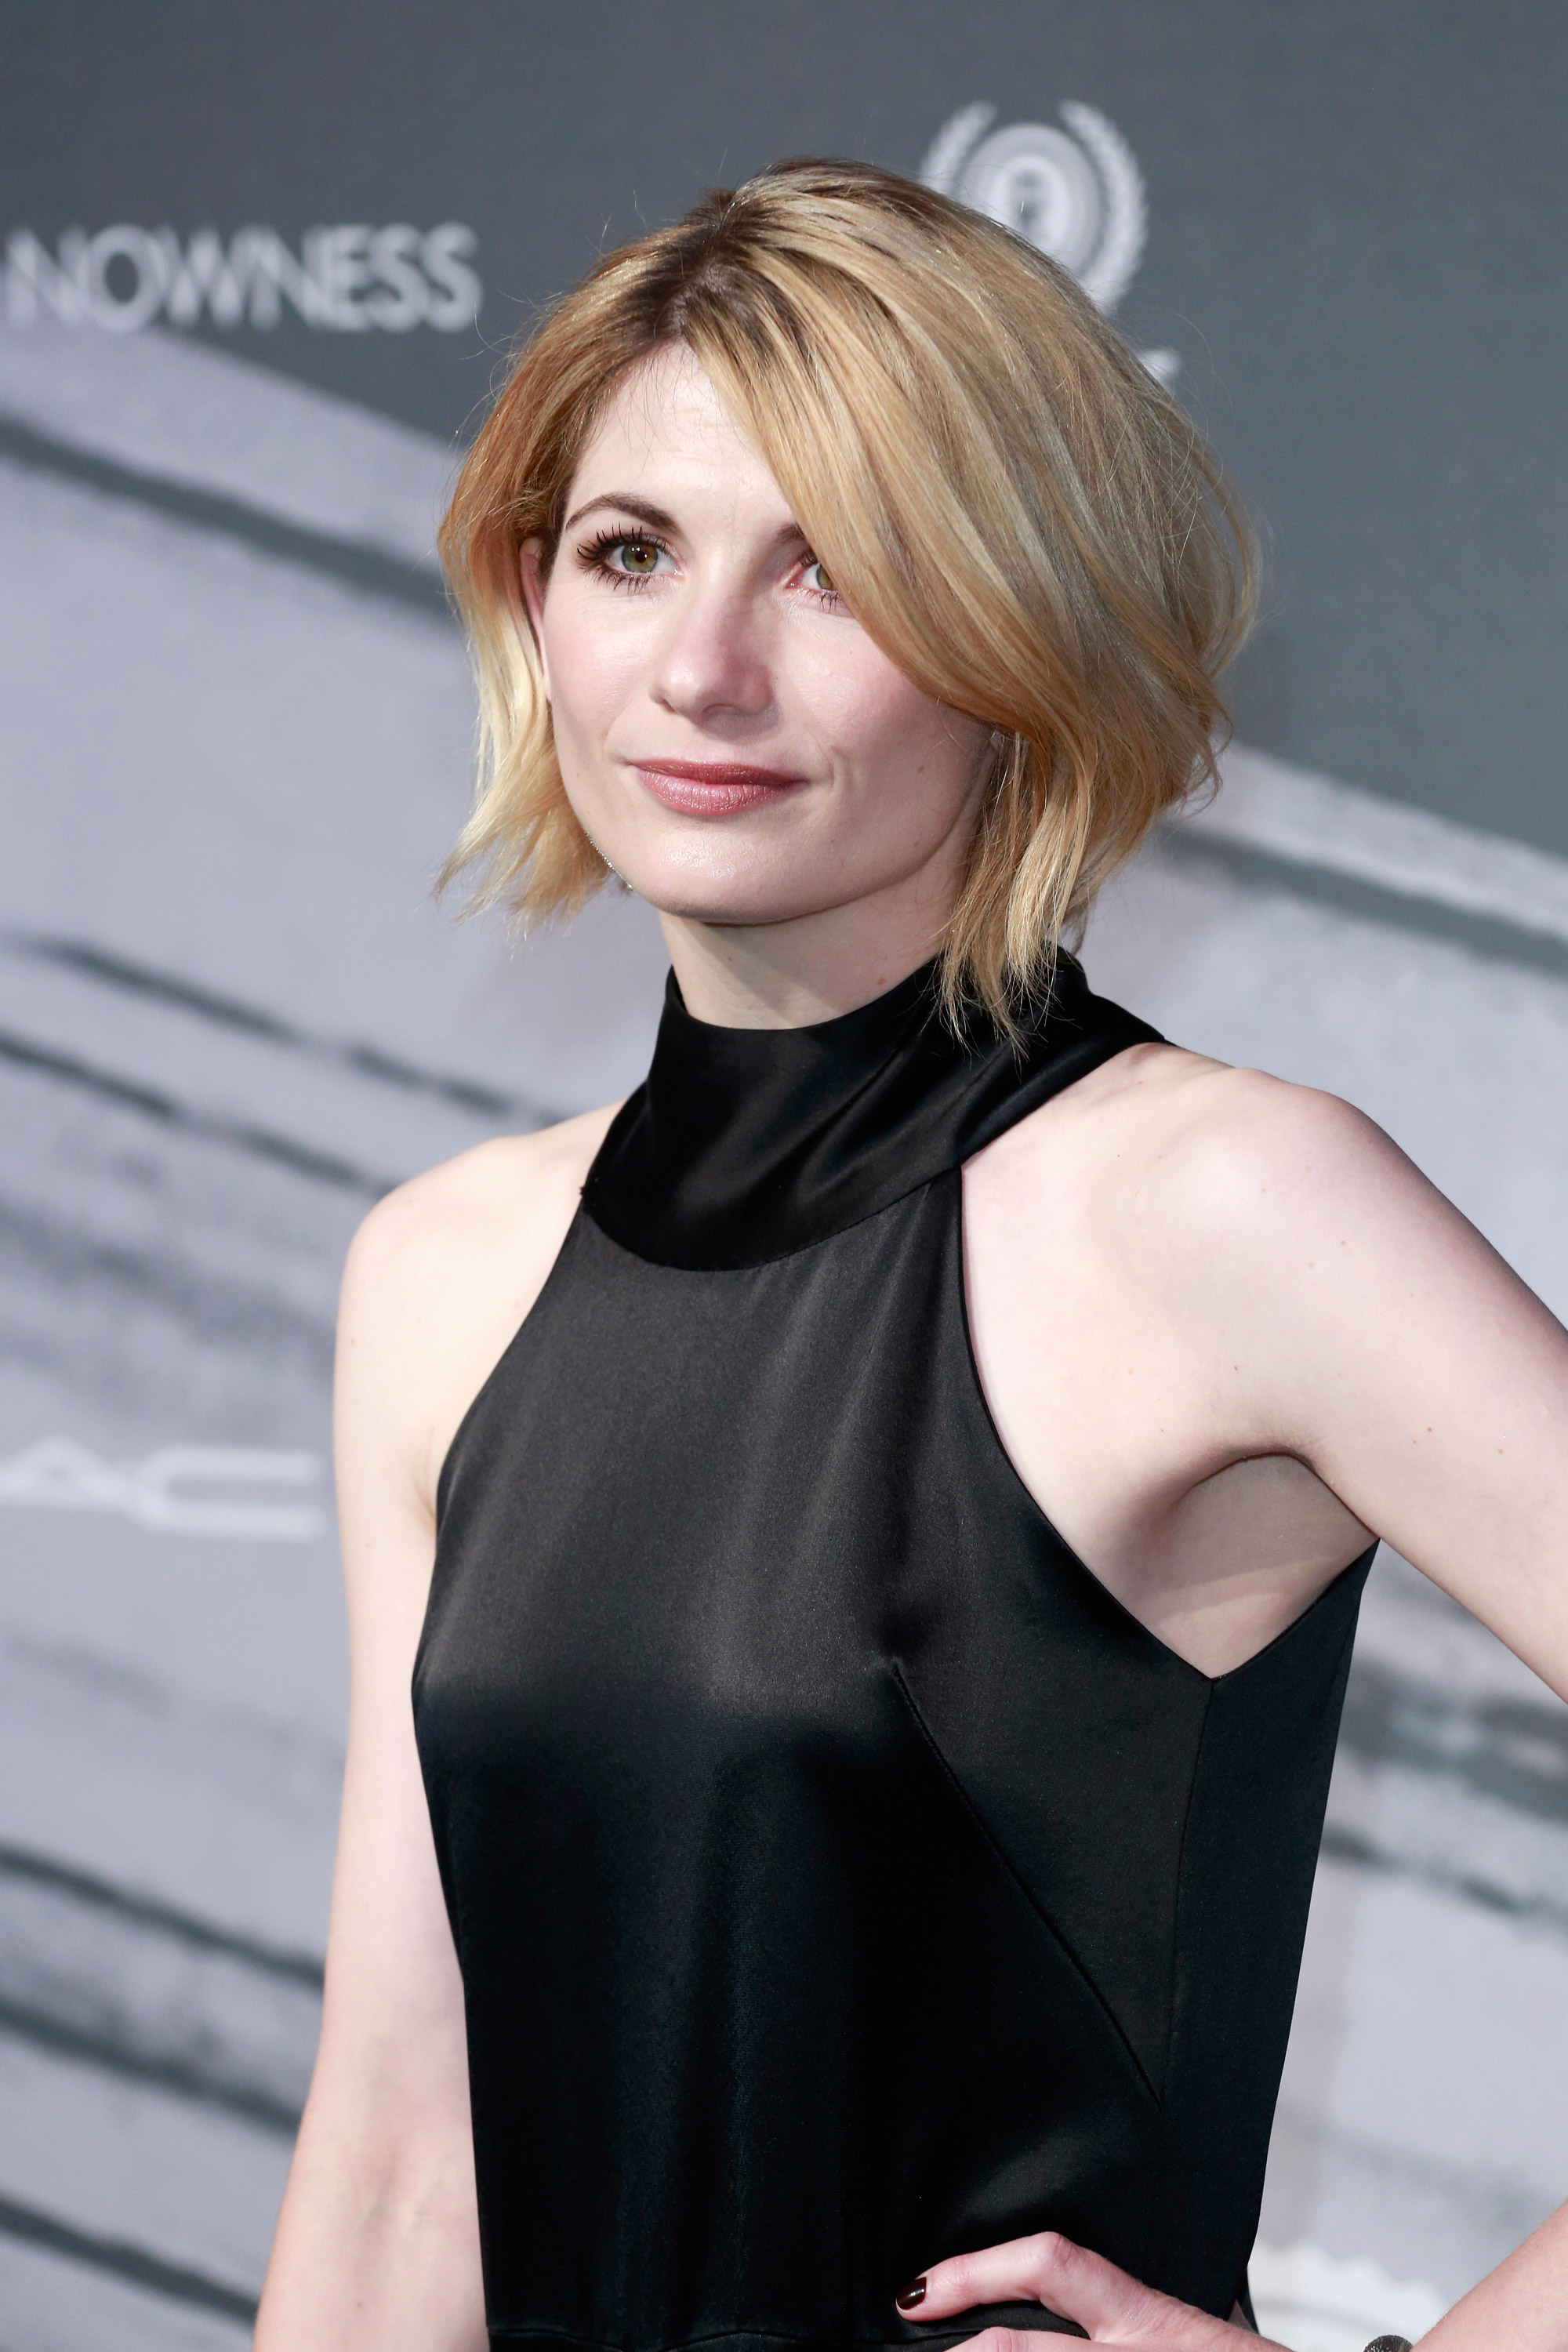 Pictures Jodie Whittaker nudes (53 photos), Topless, Bikini, Twitter, braless 2018